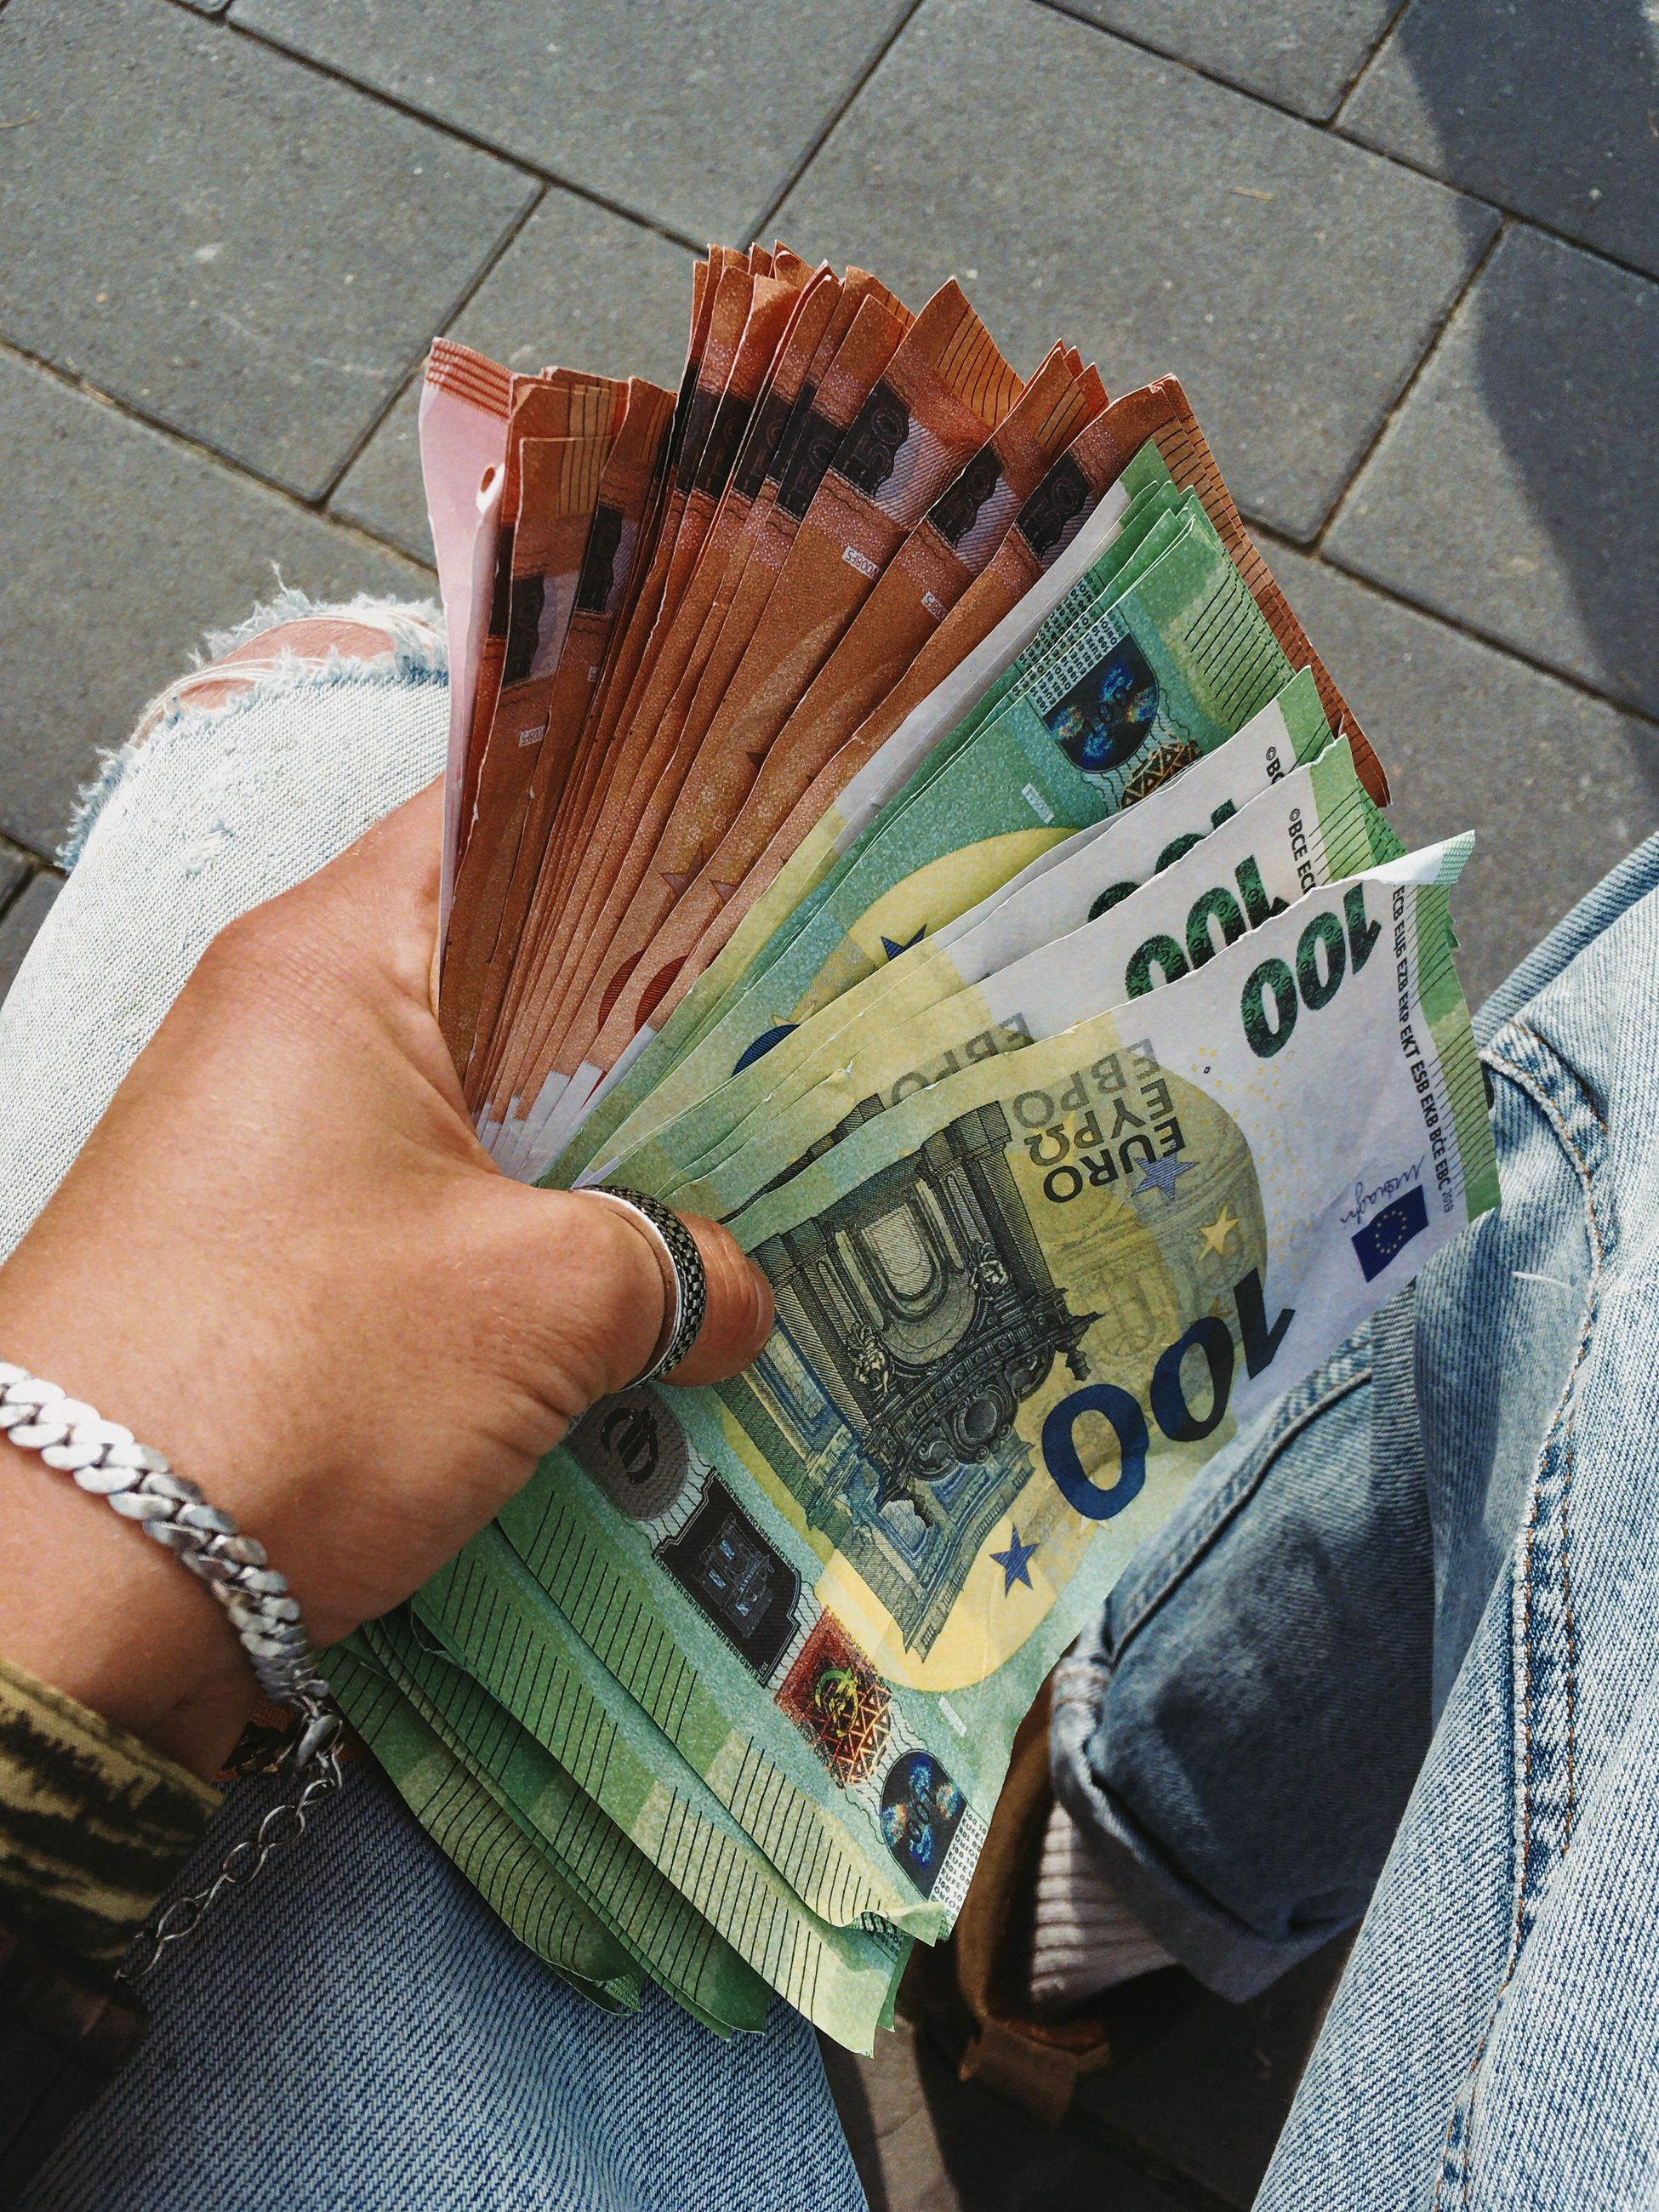 paper currency, cash, currency, one person, hand, finance, holding, high angle view, fashion accessory, money, personal perspective, business, clothing, watch, wealth, adult, lifestyles, leisure activity, art, close-up